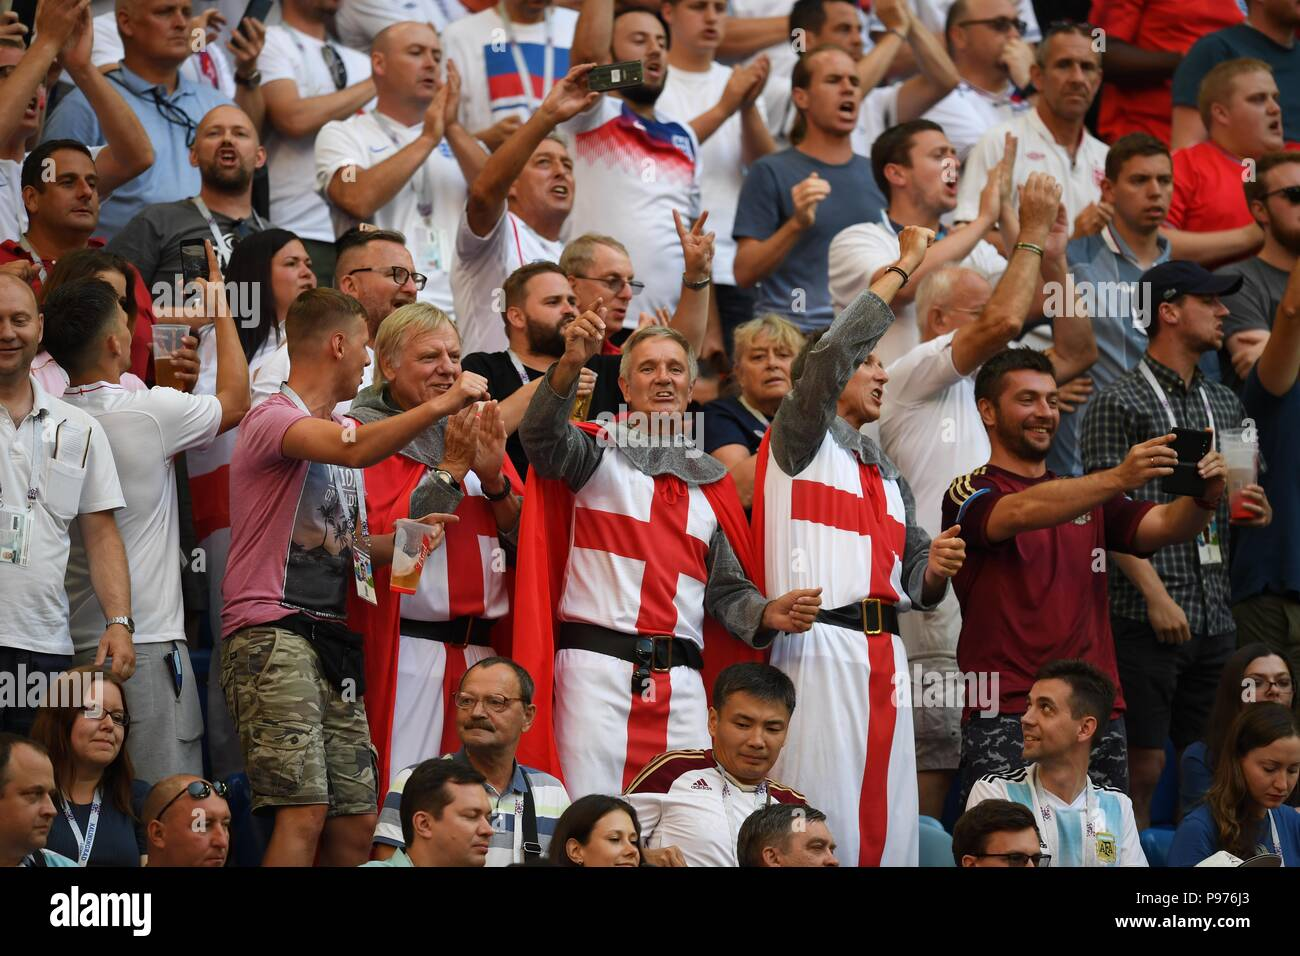 July 14th, 2018, St Petersburg, Russia. Football fans during 2018 FIFA World Cup Russia, match between England and Belgium at Saint-Petersburg Stadium, Russia. Shoja Lak/Alamy Live News - Stock Image